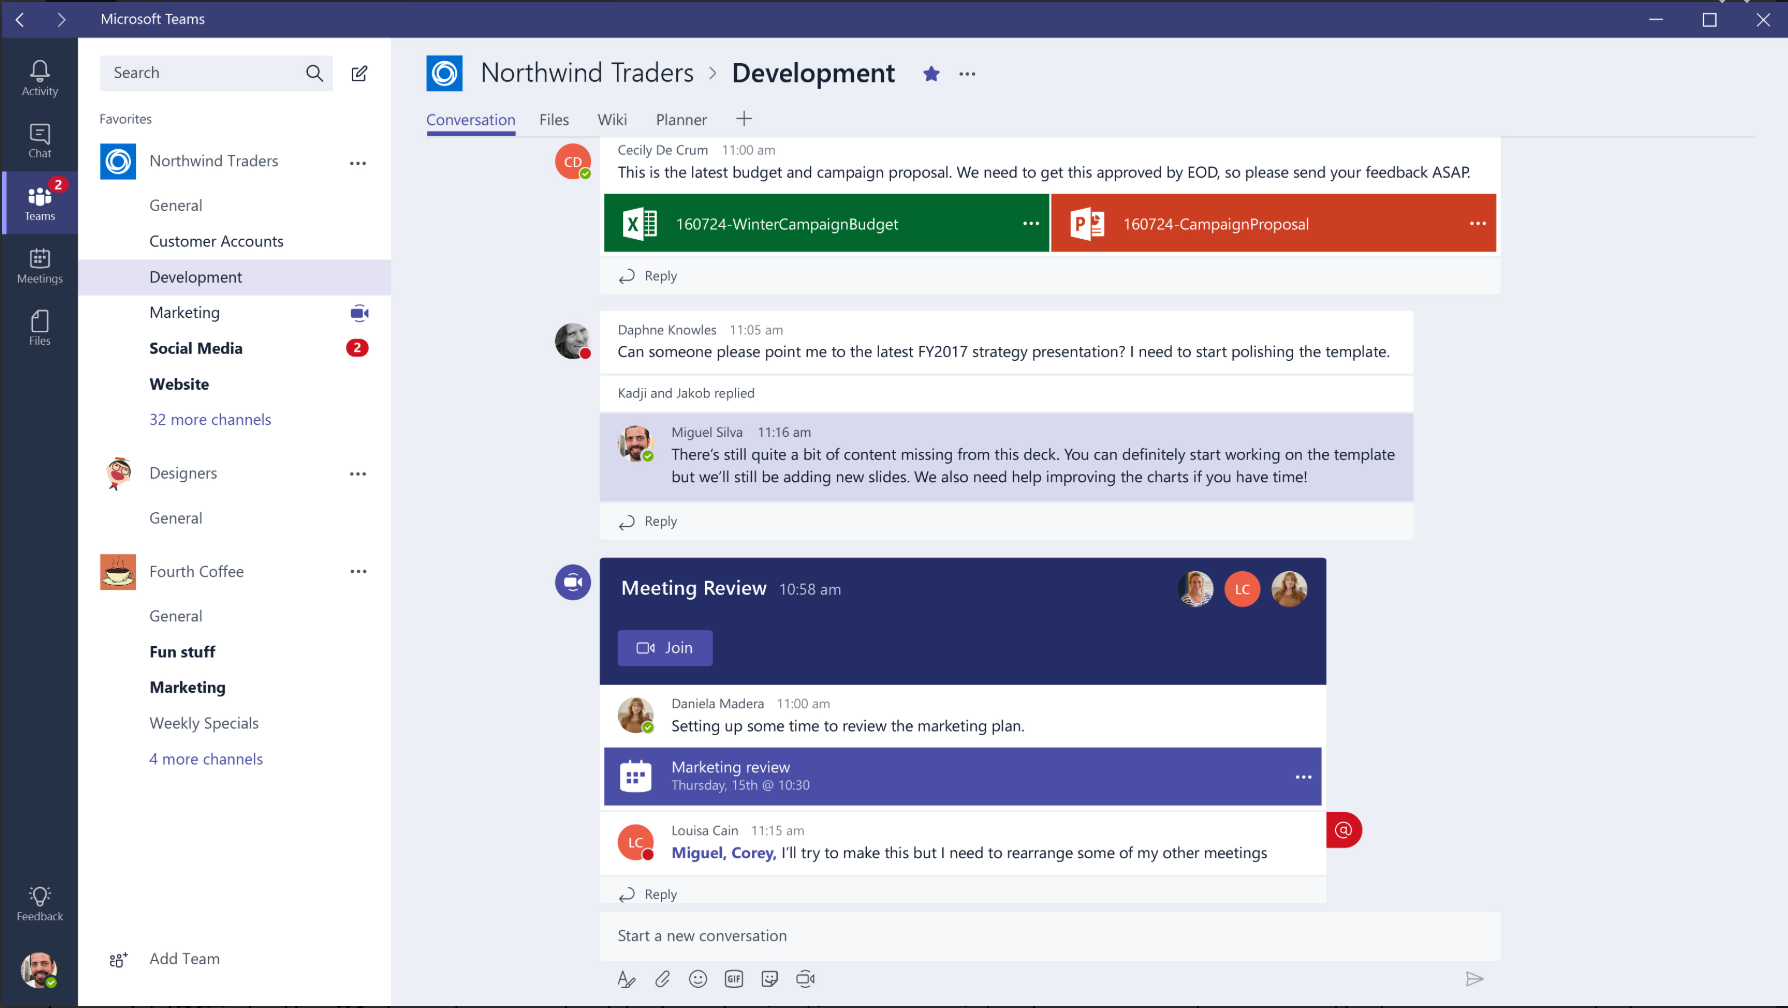 We UseMicrosoft Teams - Microsoft Teams is one of our preferred tools for HIPAA Compliant Video Remote Interpreting. Follow the link below to join and install it.Go To: Microsoft Teams NOTE: Make sure to sign a Business Associate Agreement (BAA) with Microsoft (Microsoft Teams, Office 365) before you store or transmit any Protected Health Information (PHI).Go To: Overview of Security and Compliance in Microsoft Teams**Microsoft Office 365 Required for Enterprise-Level Security & HIPAA Compliance.